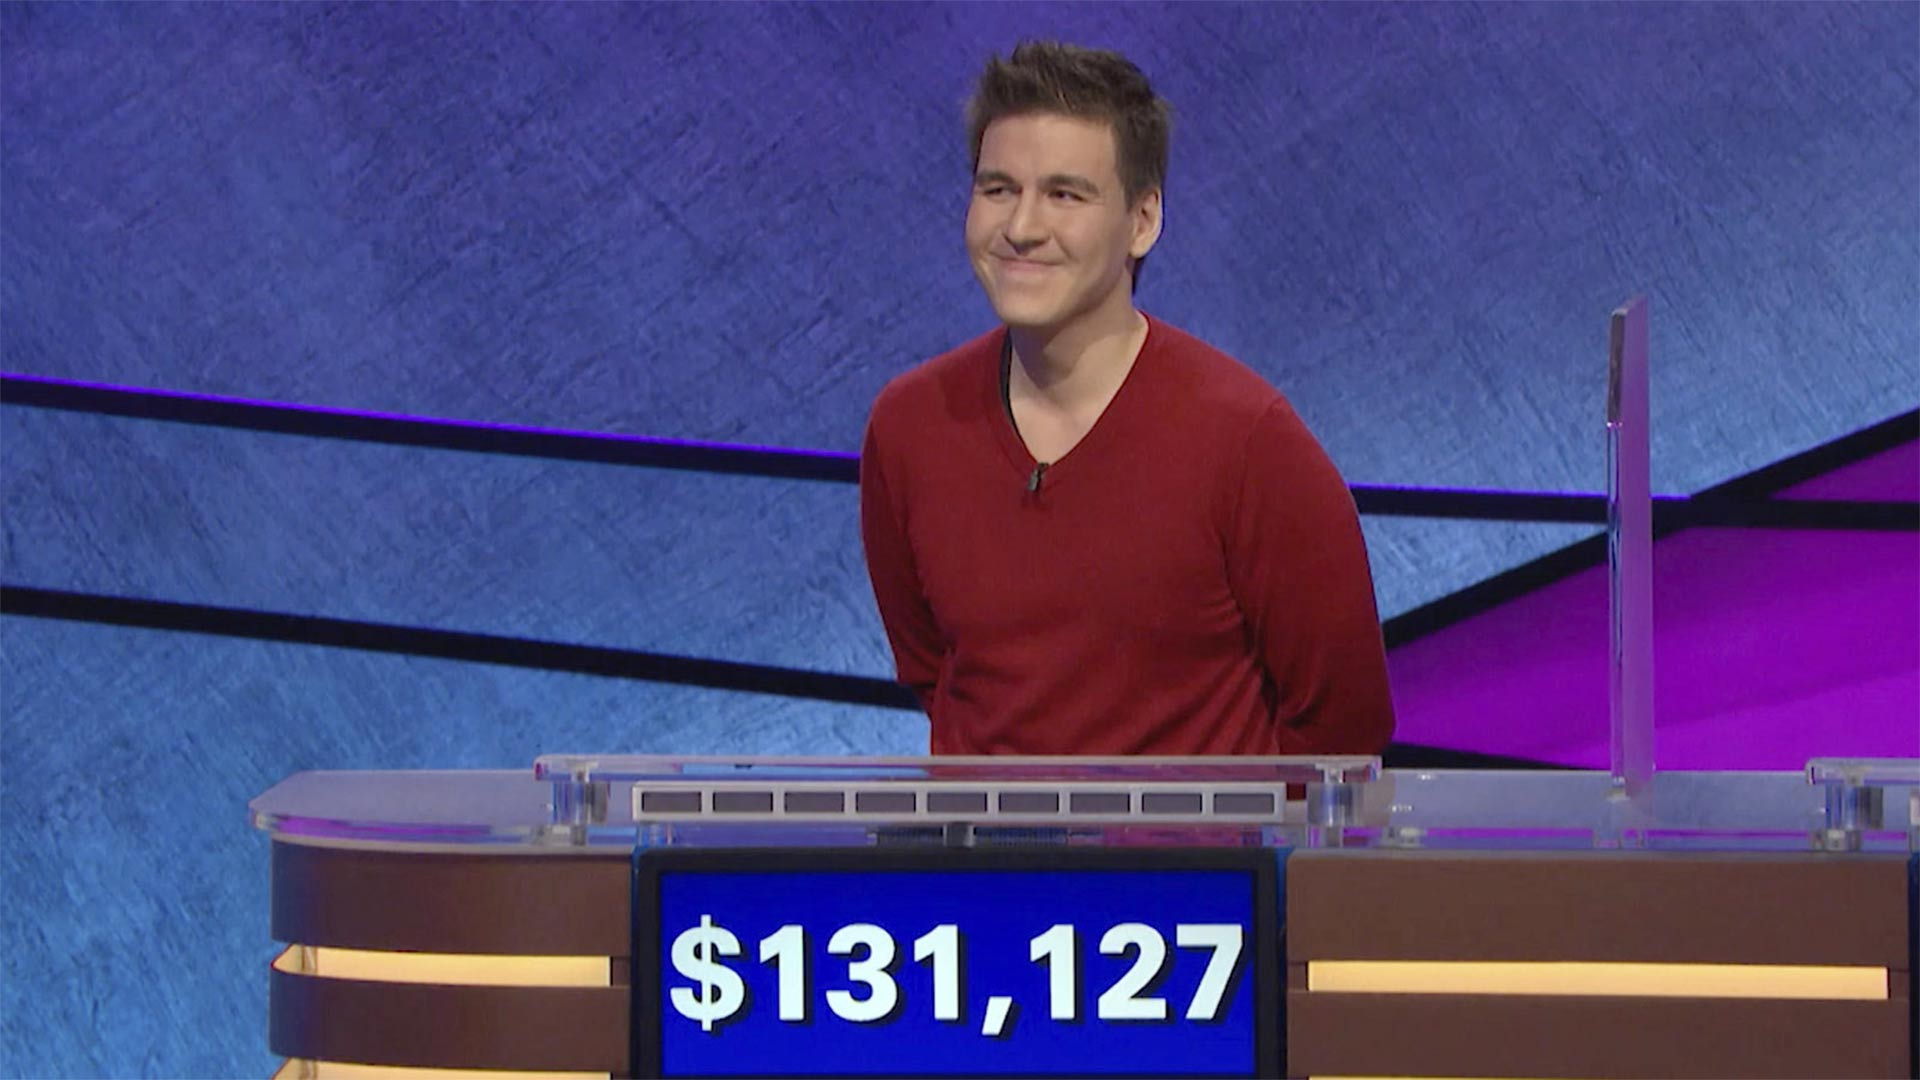 Professional sports gambler James Holzhauer won $131,127 during a Jeopardy! show that aired Wednesday night, breaking his previous record.